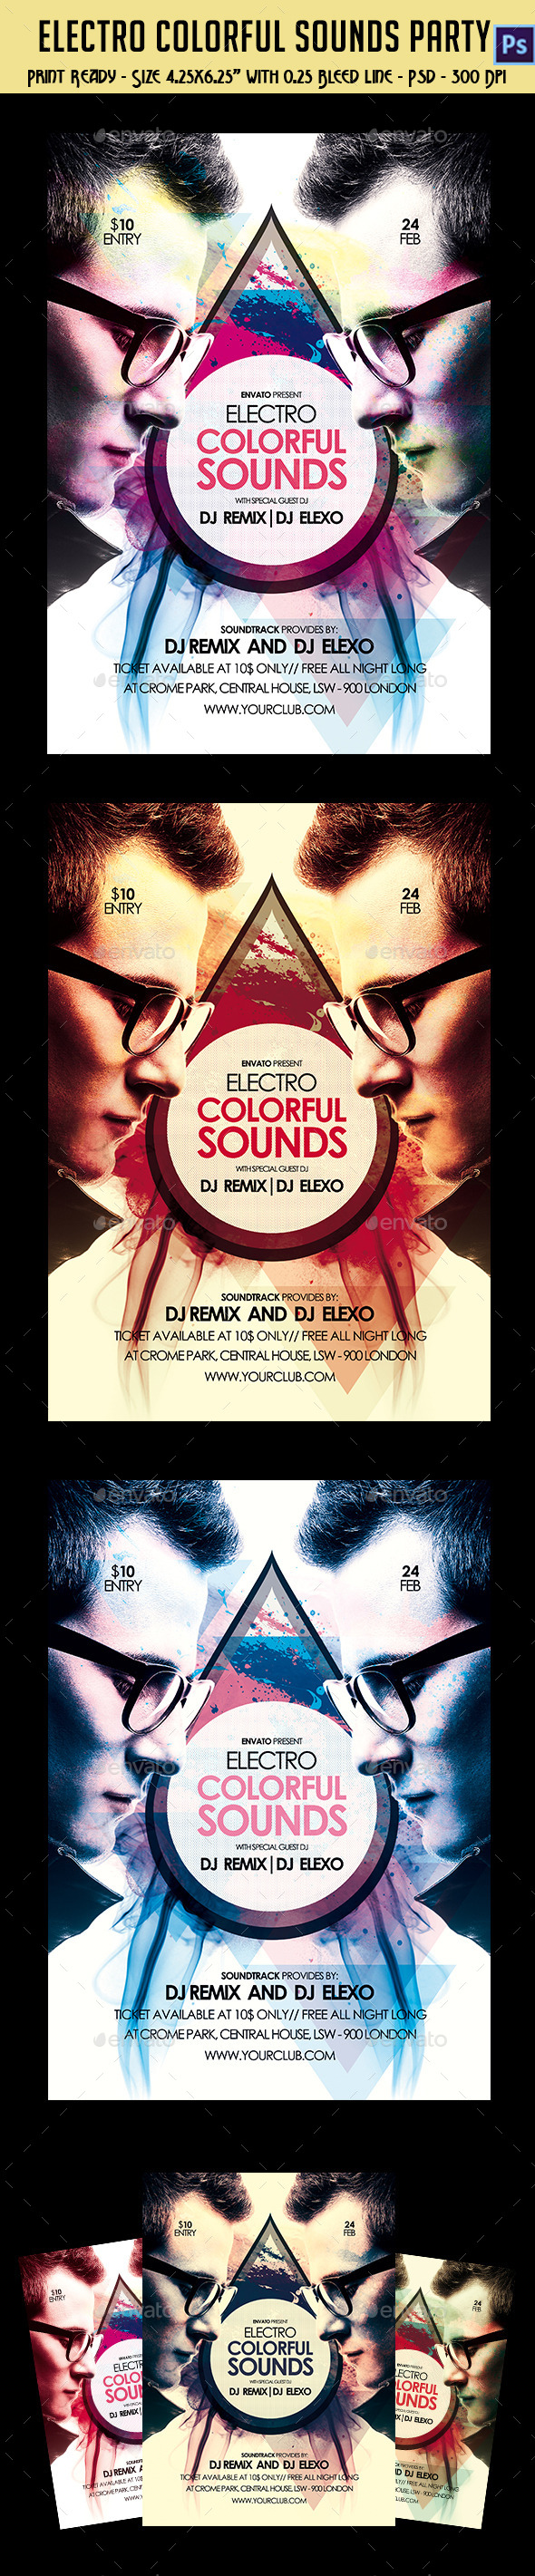 Electro Colorful Sounds Party Flyer